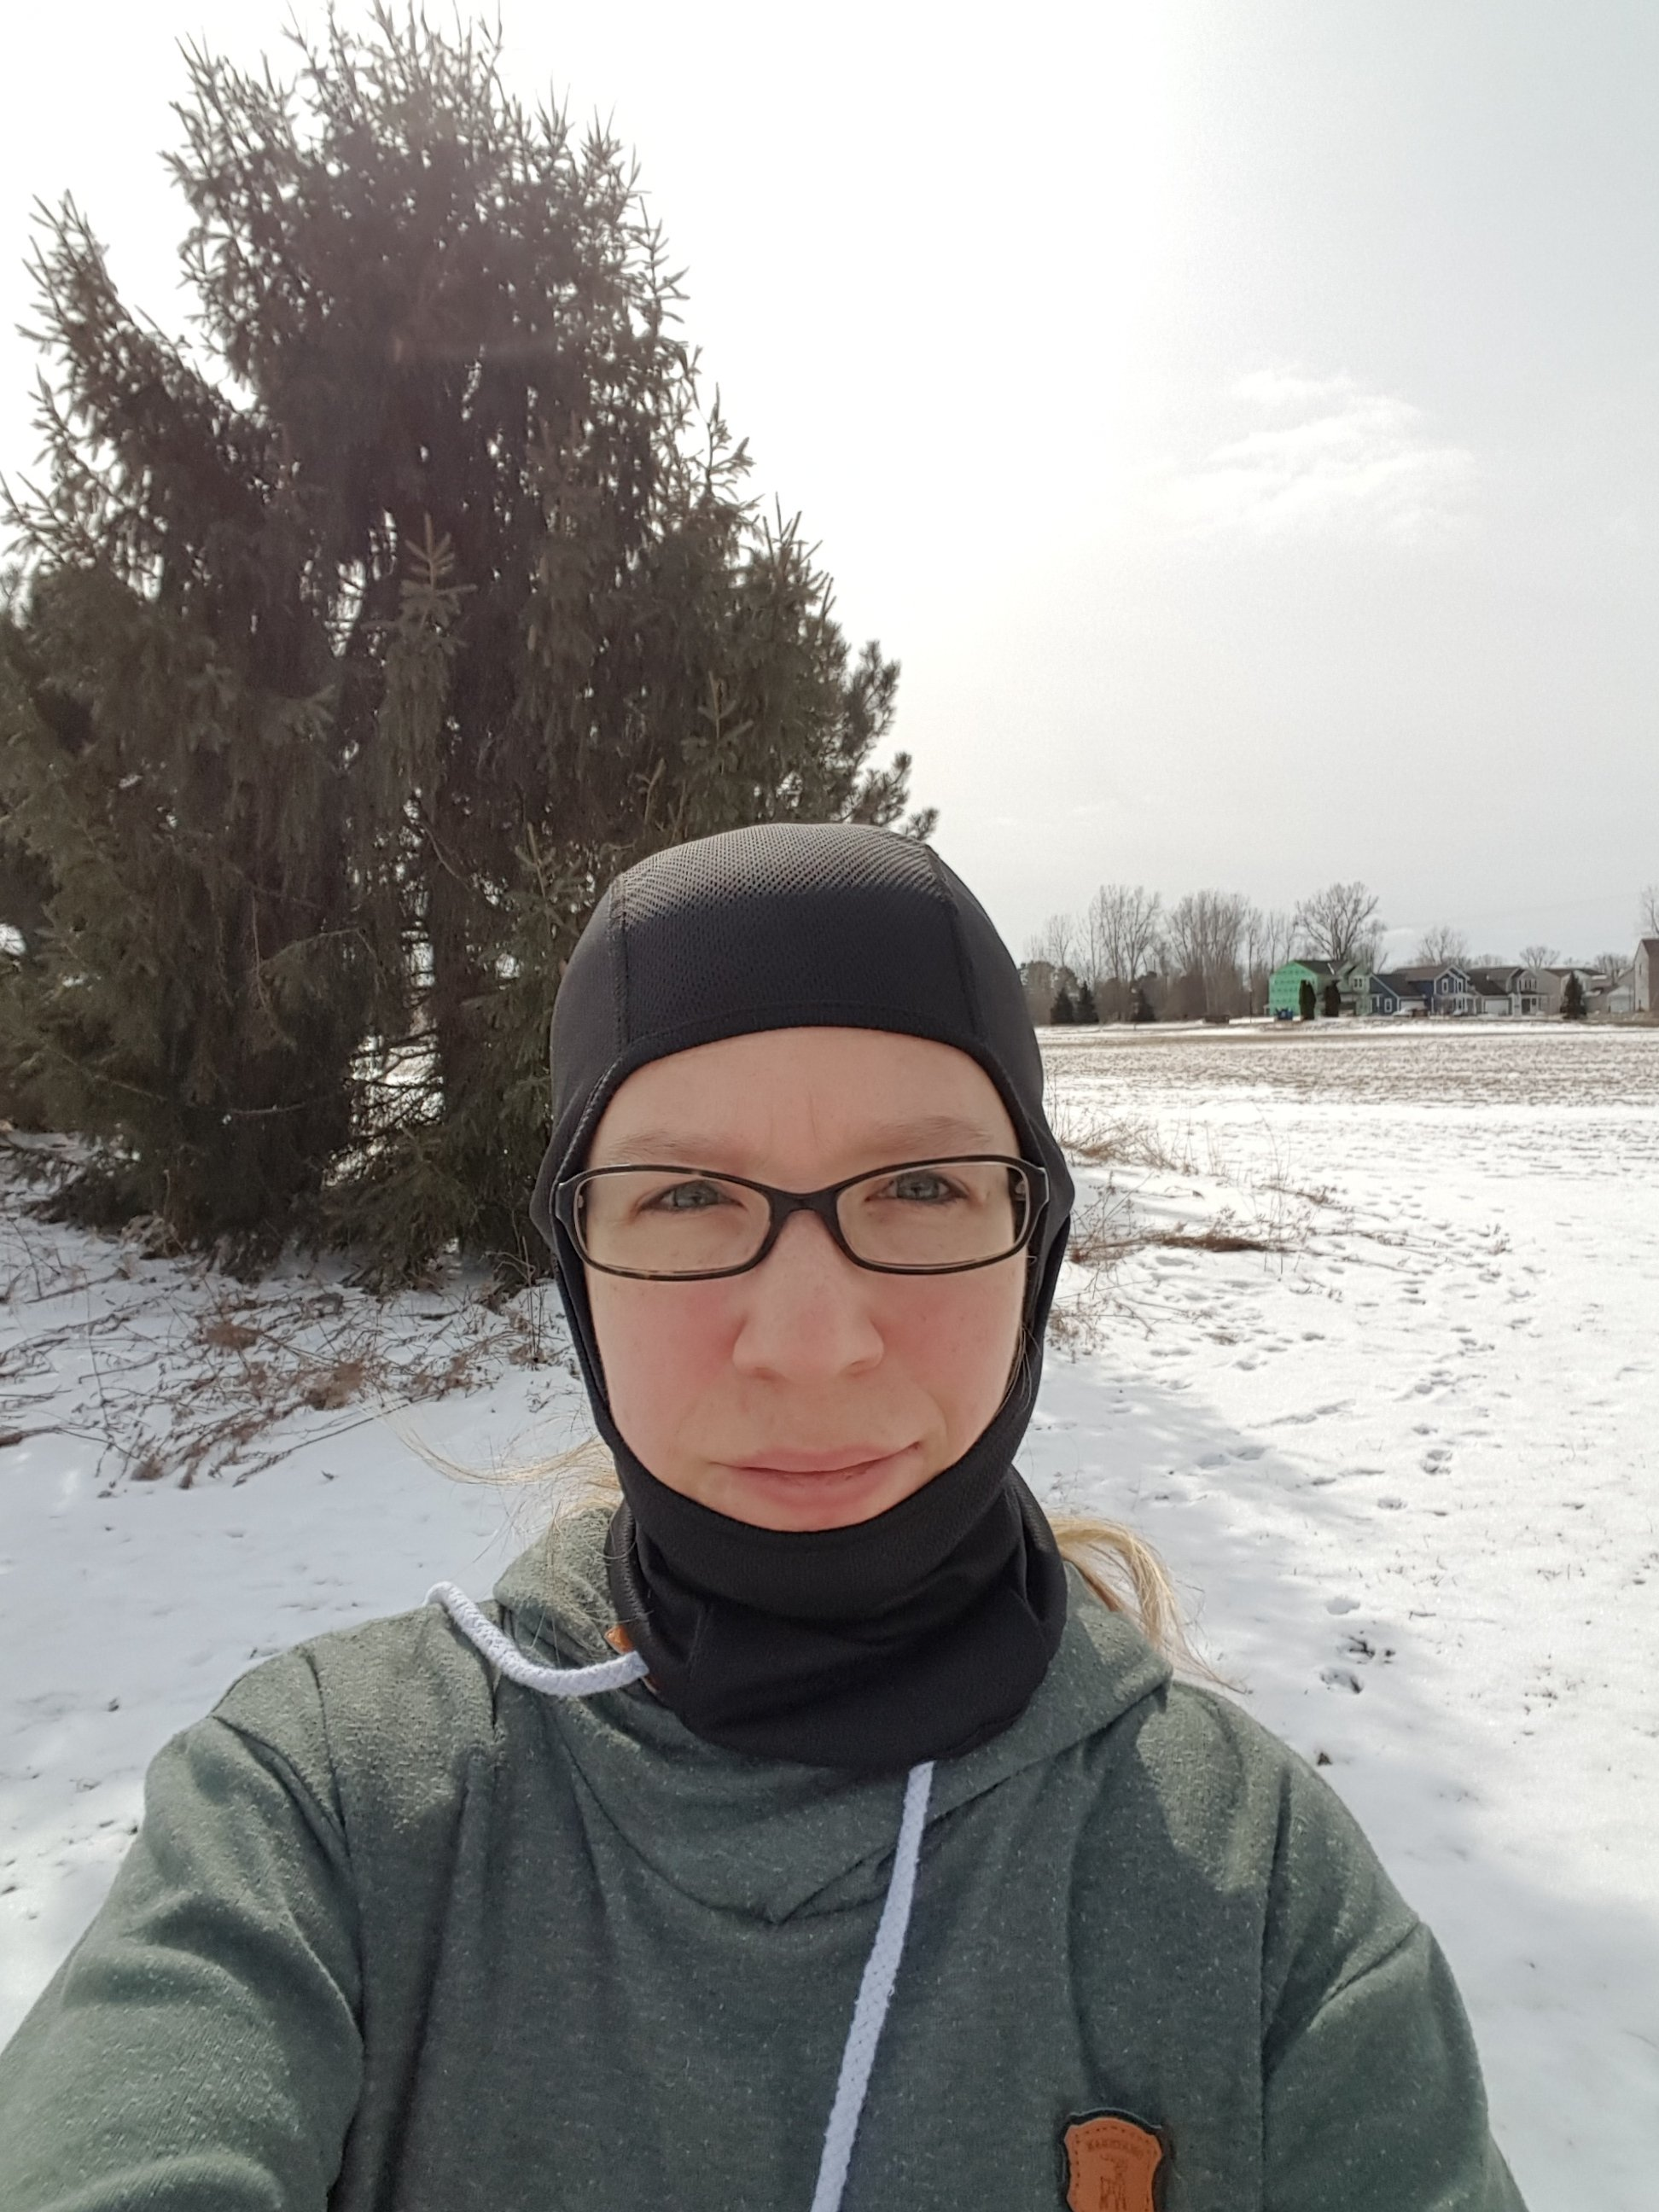 Me, wearing a balaclava on my head, standing in an open field covered in snow.